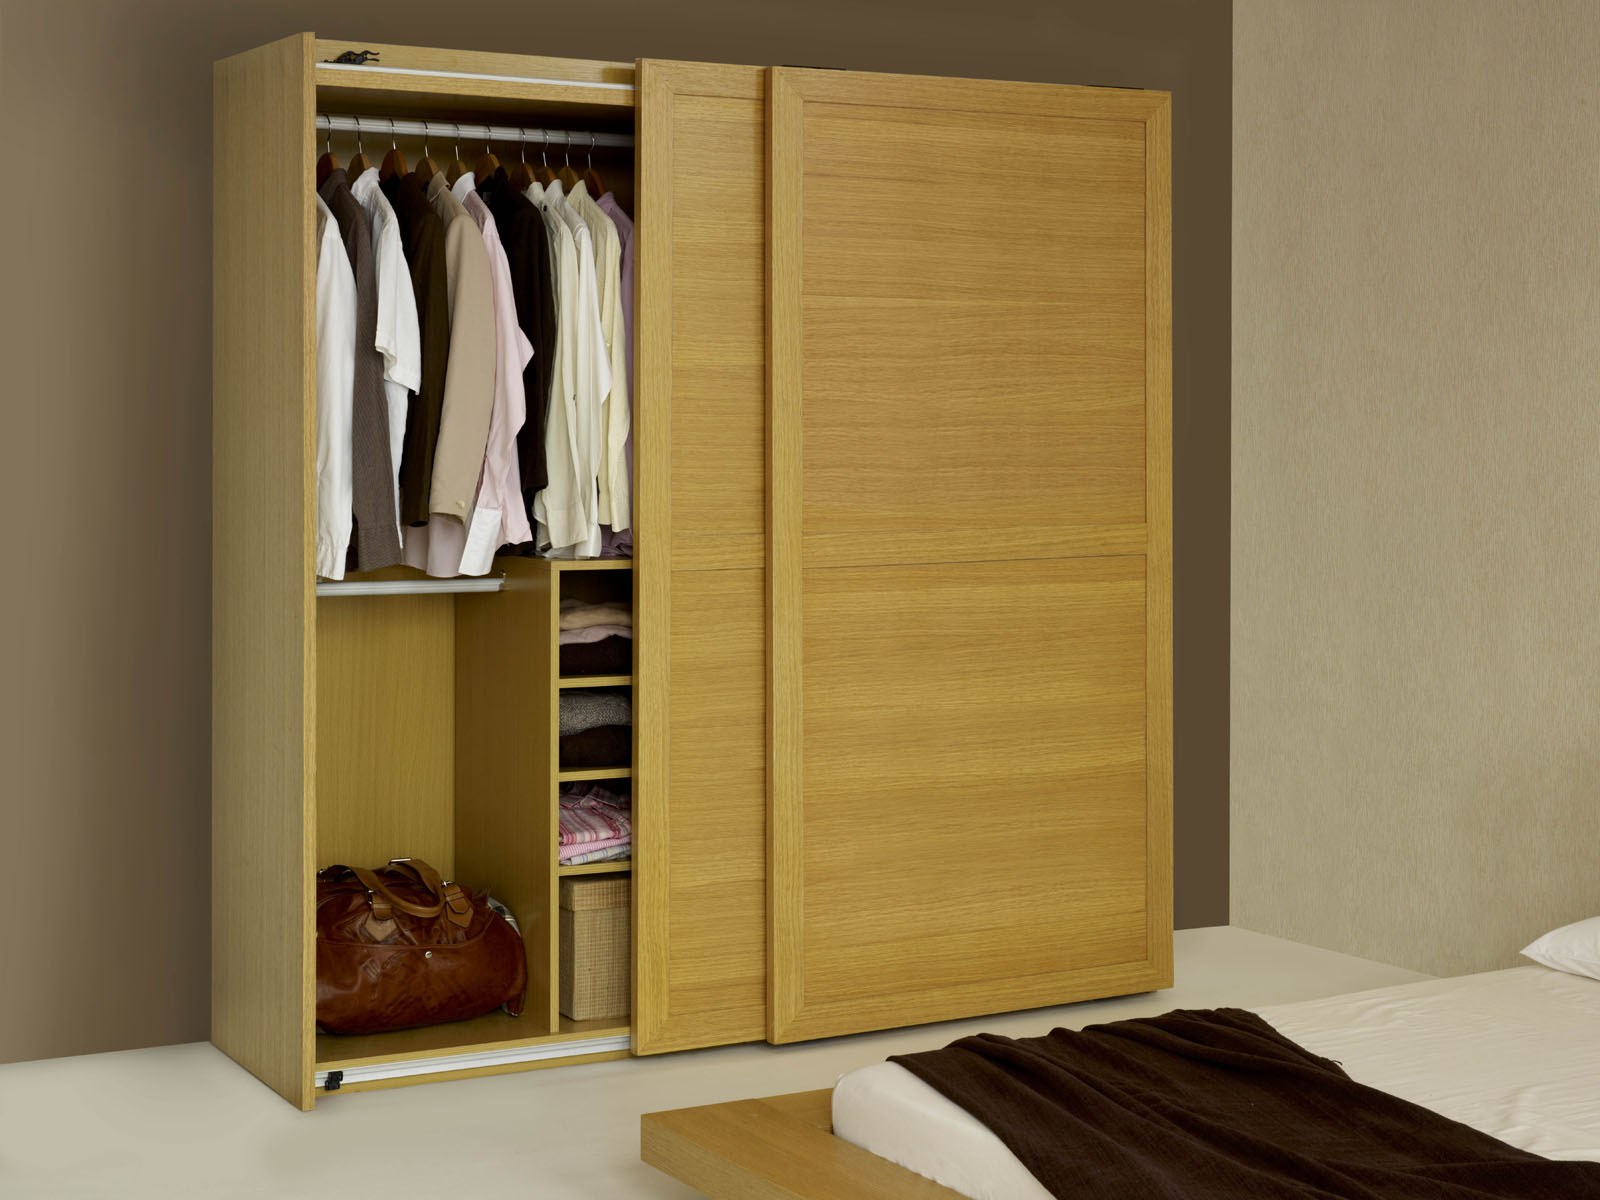 Wooden Sliding Wardrobe Hpd434 Sliding Door Wardrobes Al Habib Panel Doors